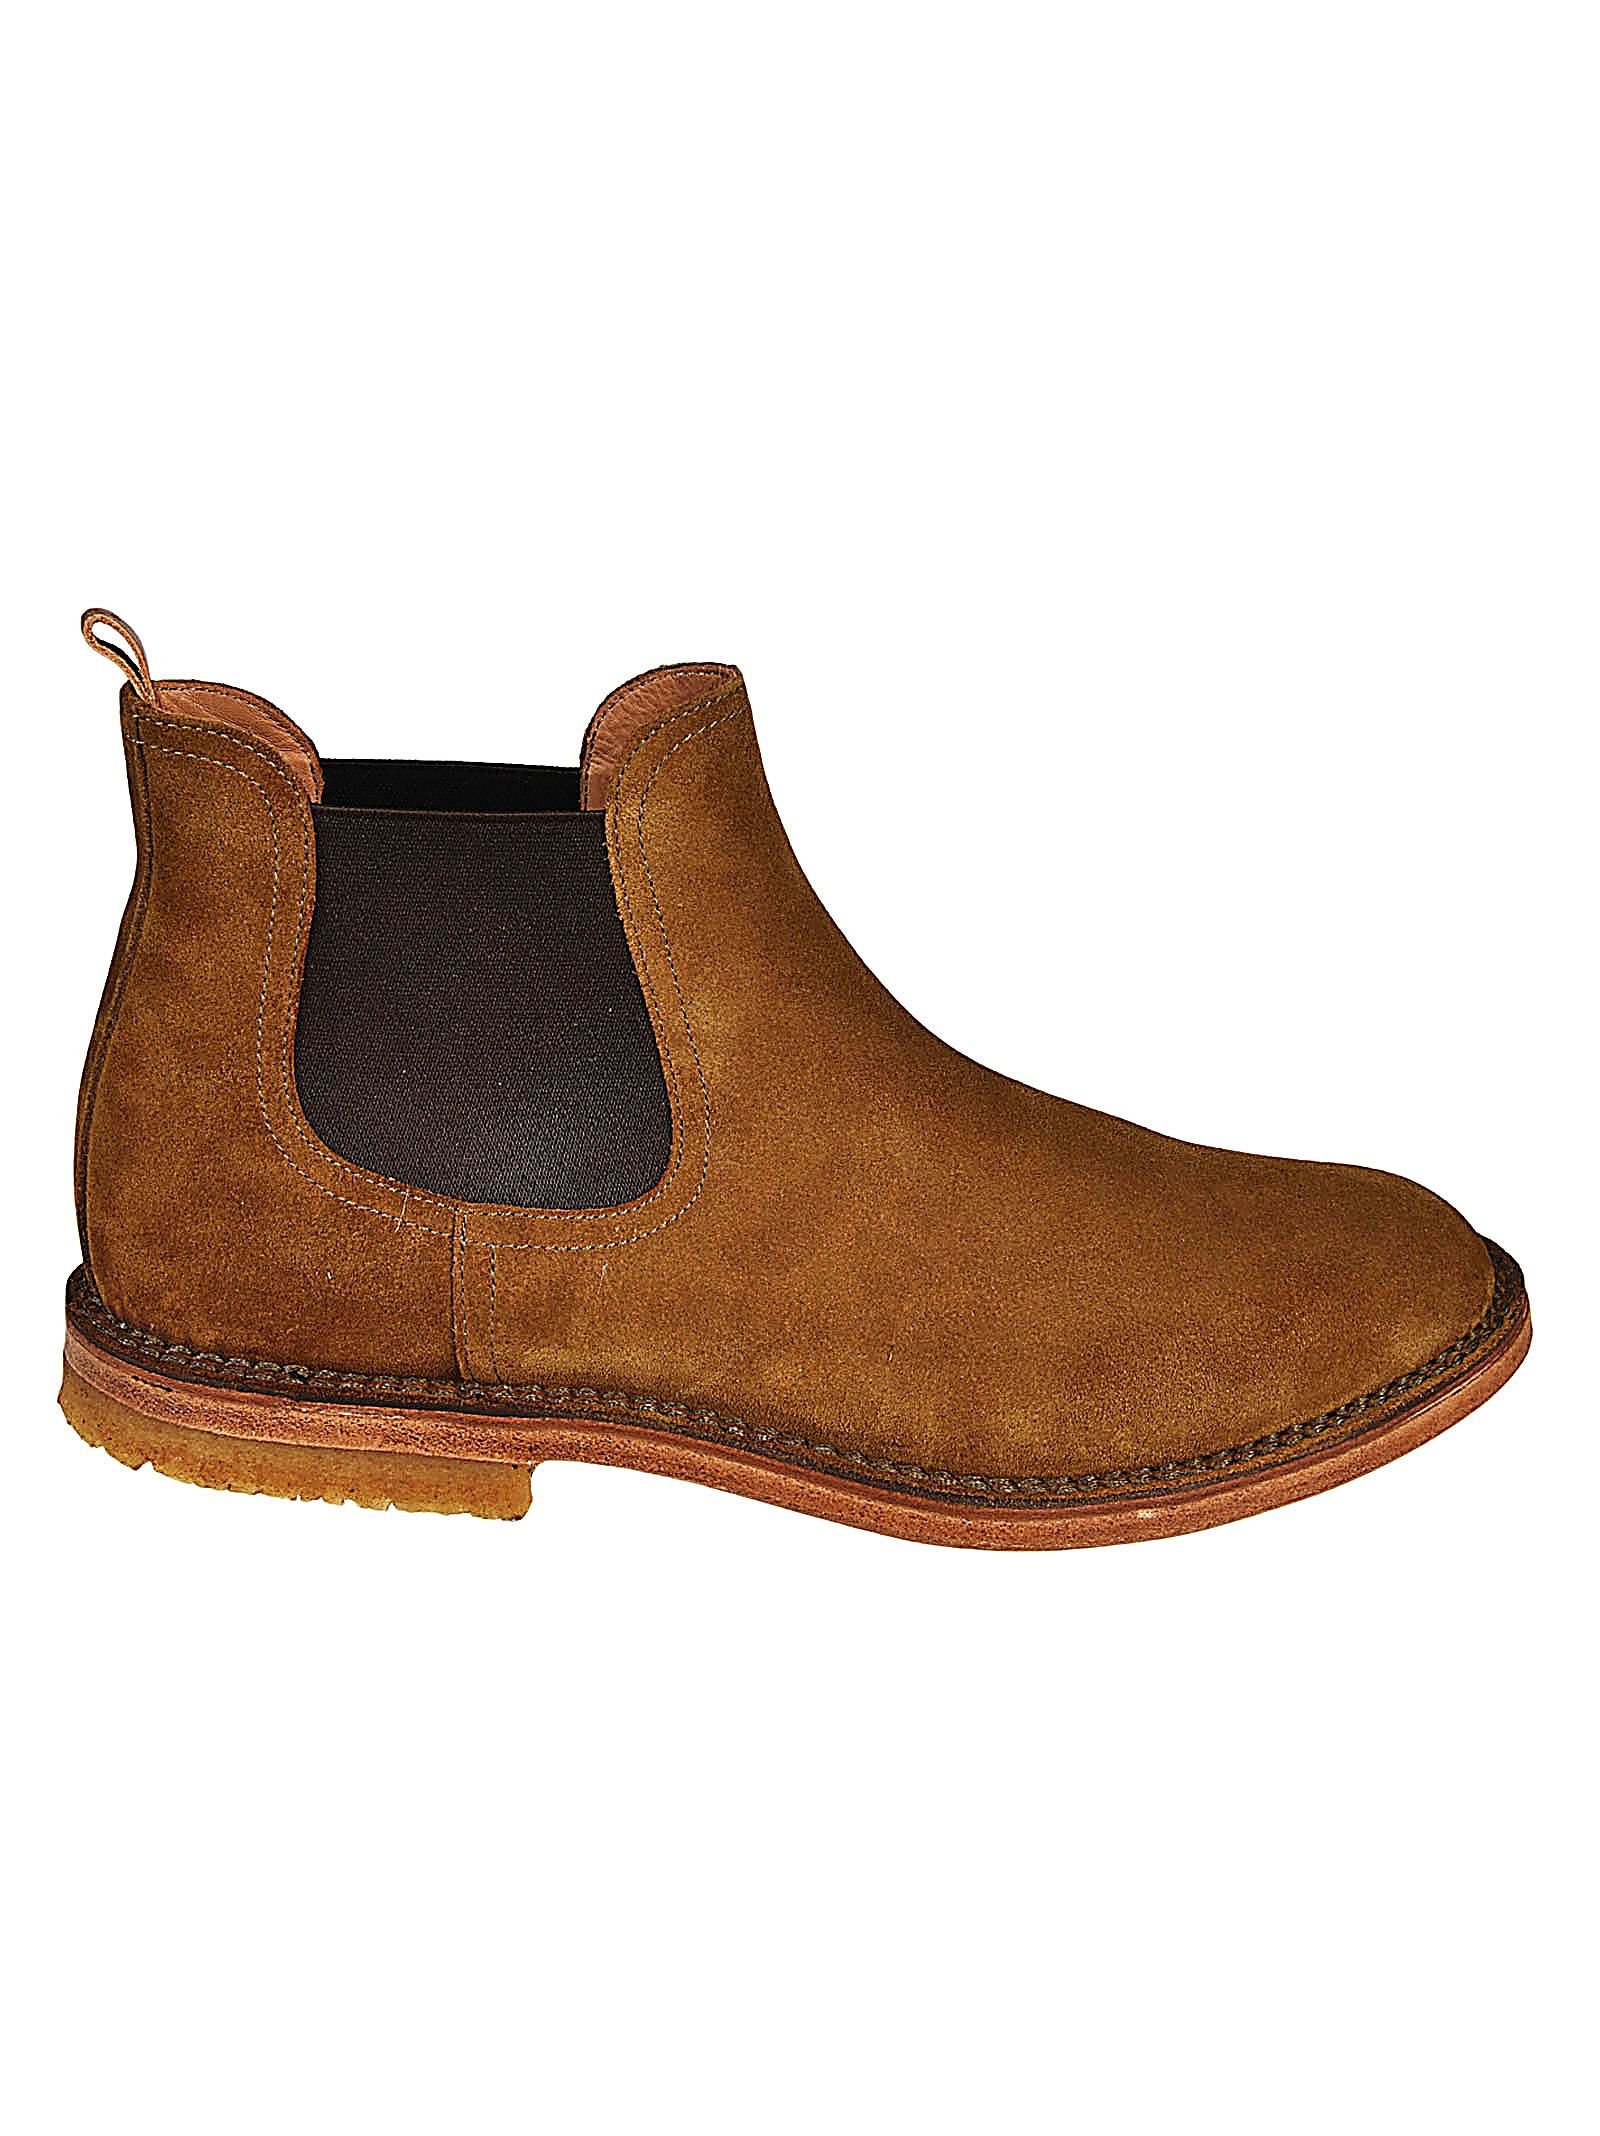 Buttero Classic Ankle Boots